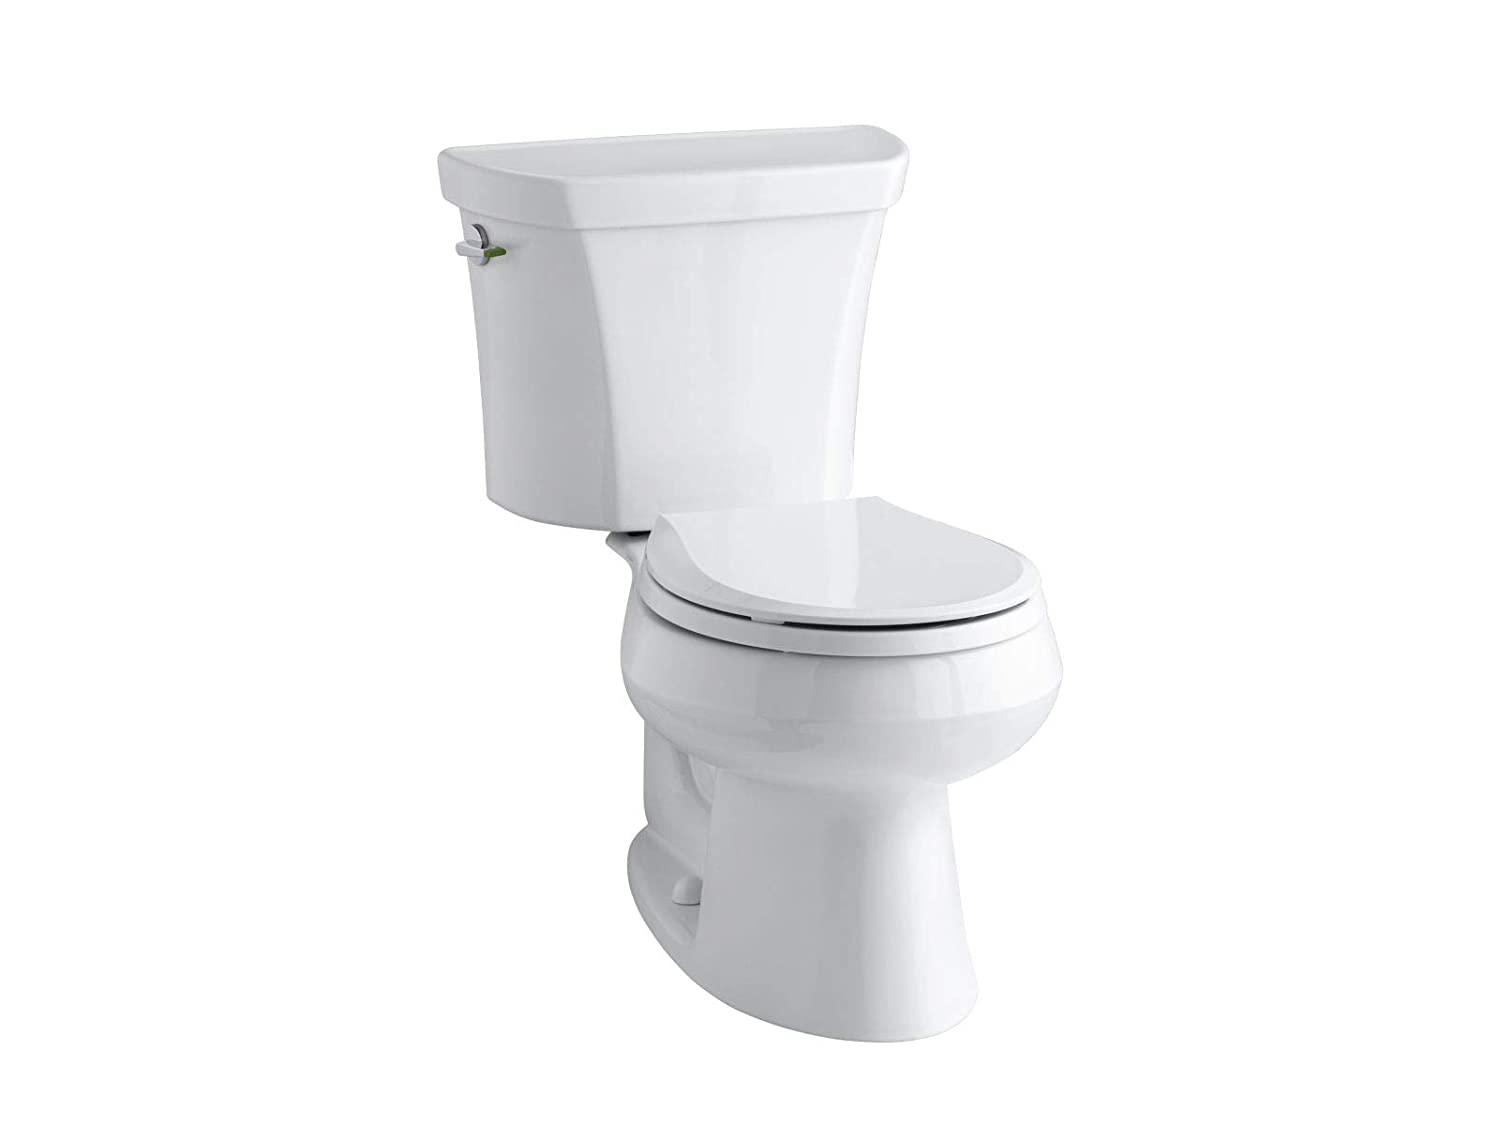 Top 5 Best Kohler Toilets Reviews in 2020 5